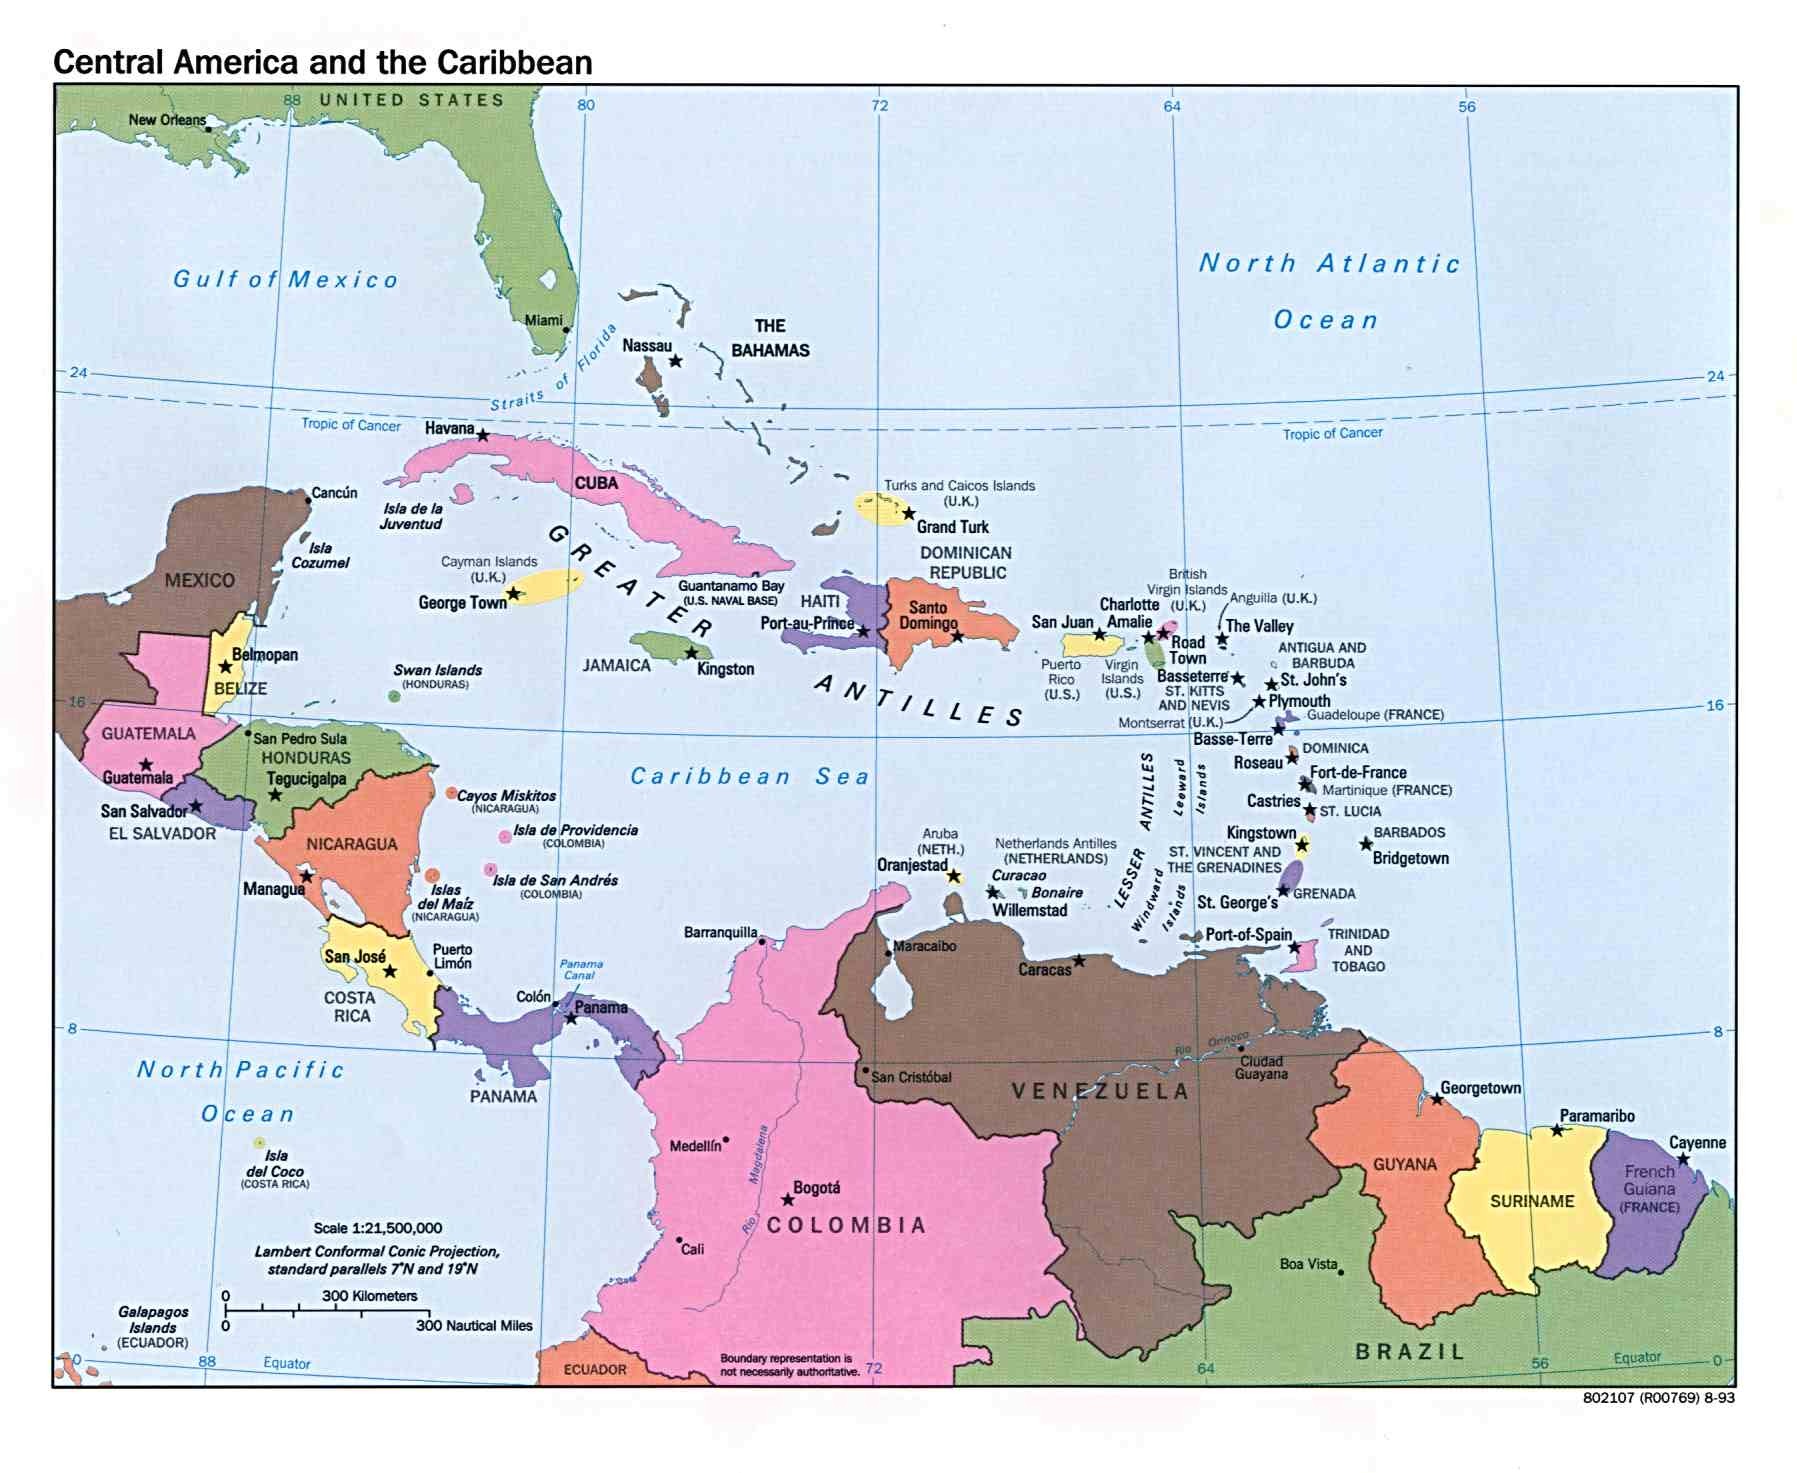 Central America and the Caribbean Political Map 1993 Full size